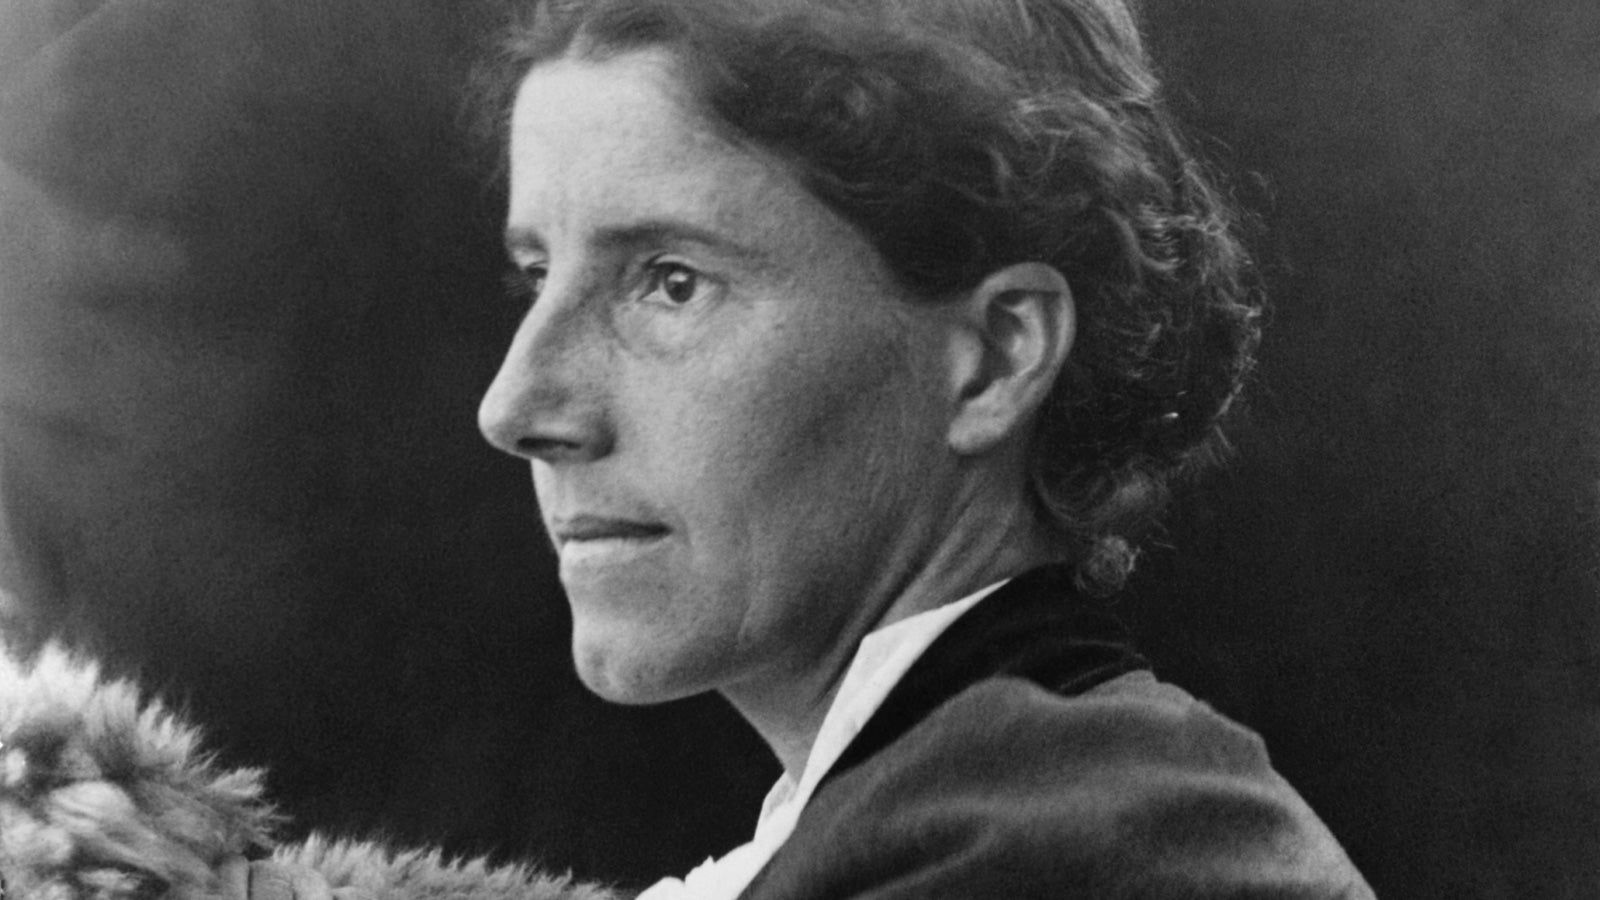 A black and white photograph of Charlotte Perkins Gilman taken in profile in roughly 1900